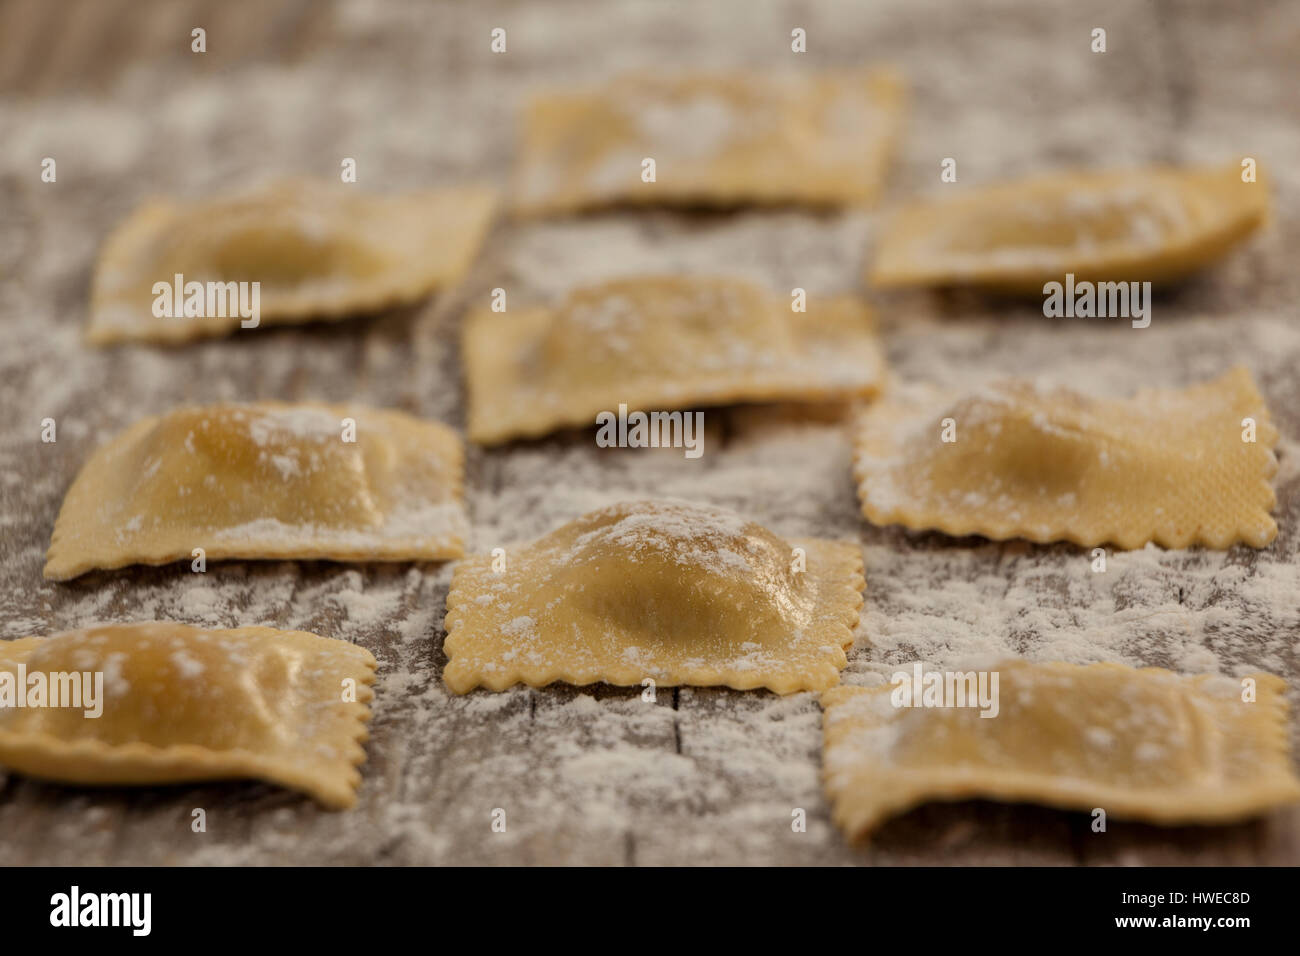 Close-up of ravioli pasta dusted with floor on wooden background - Stock Image